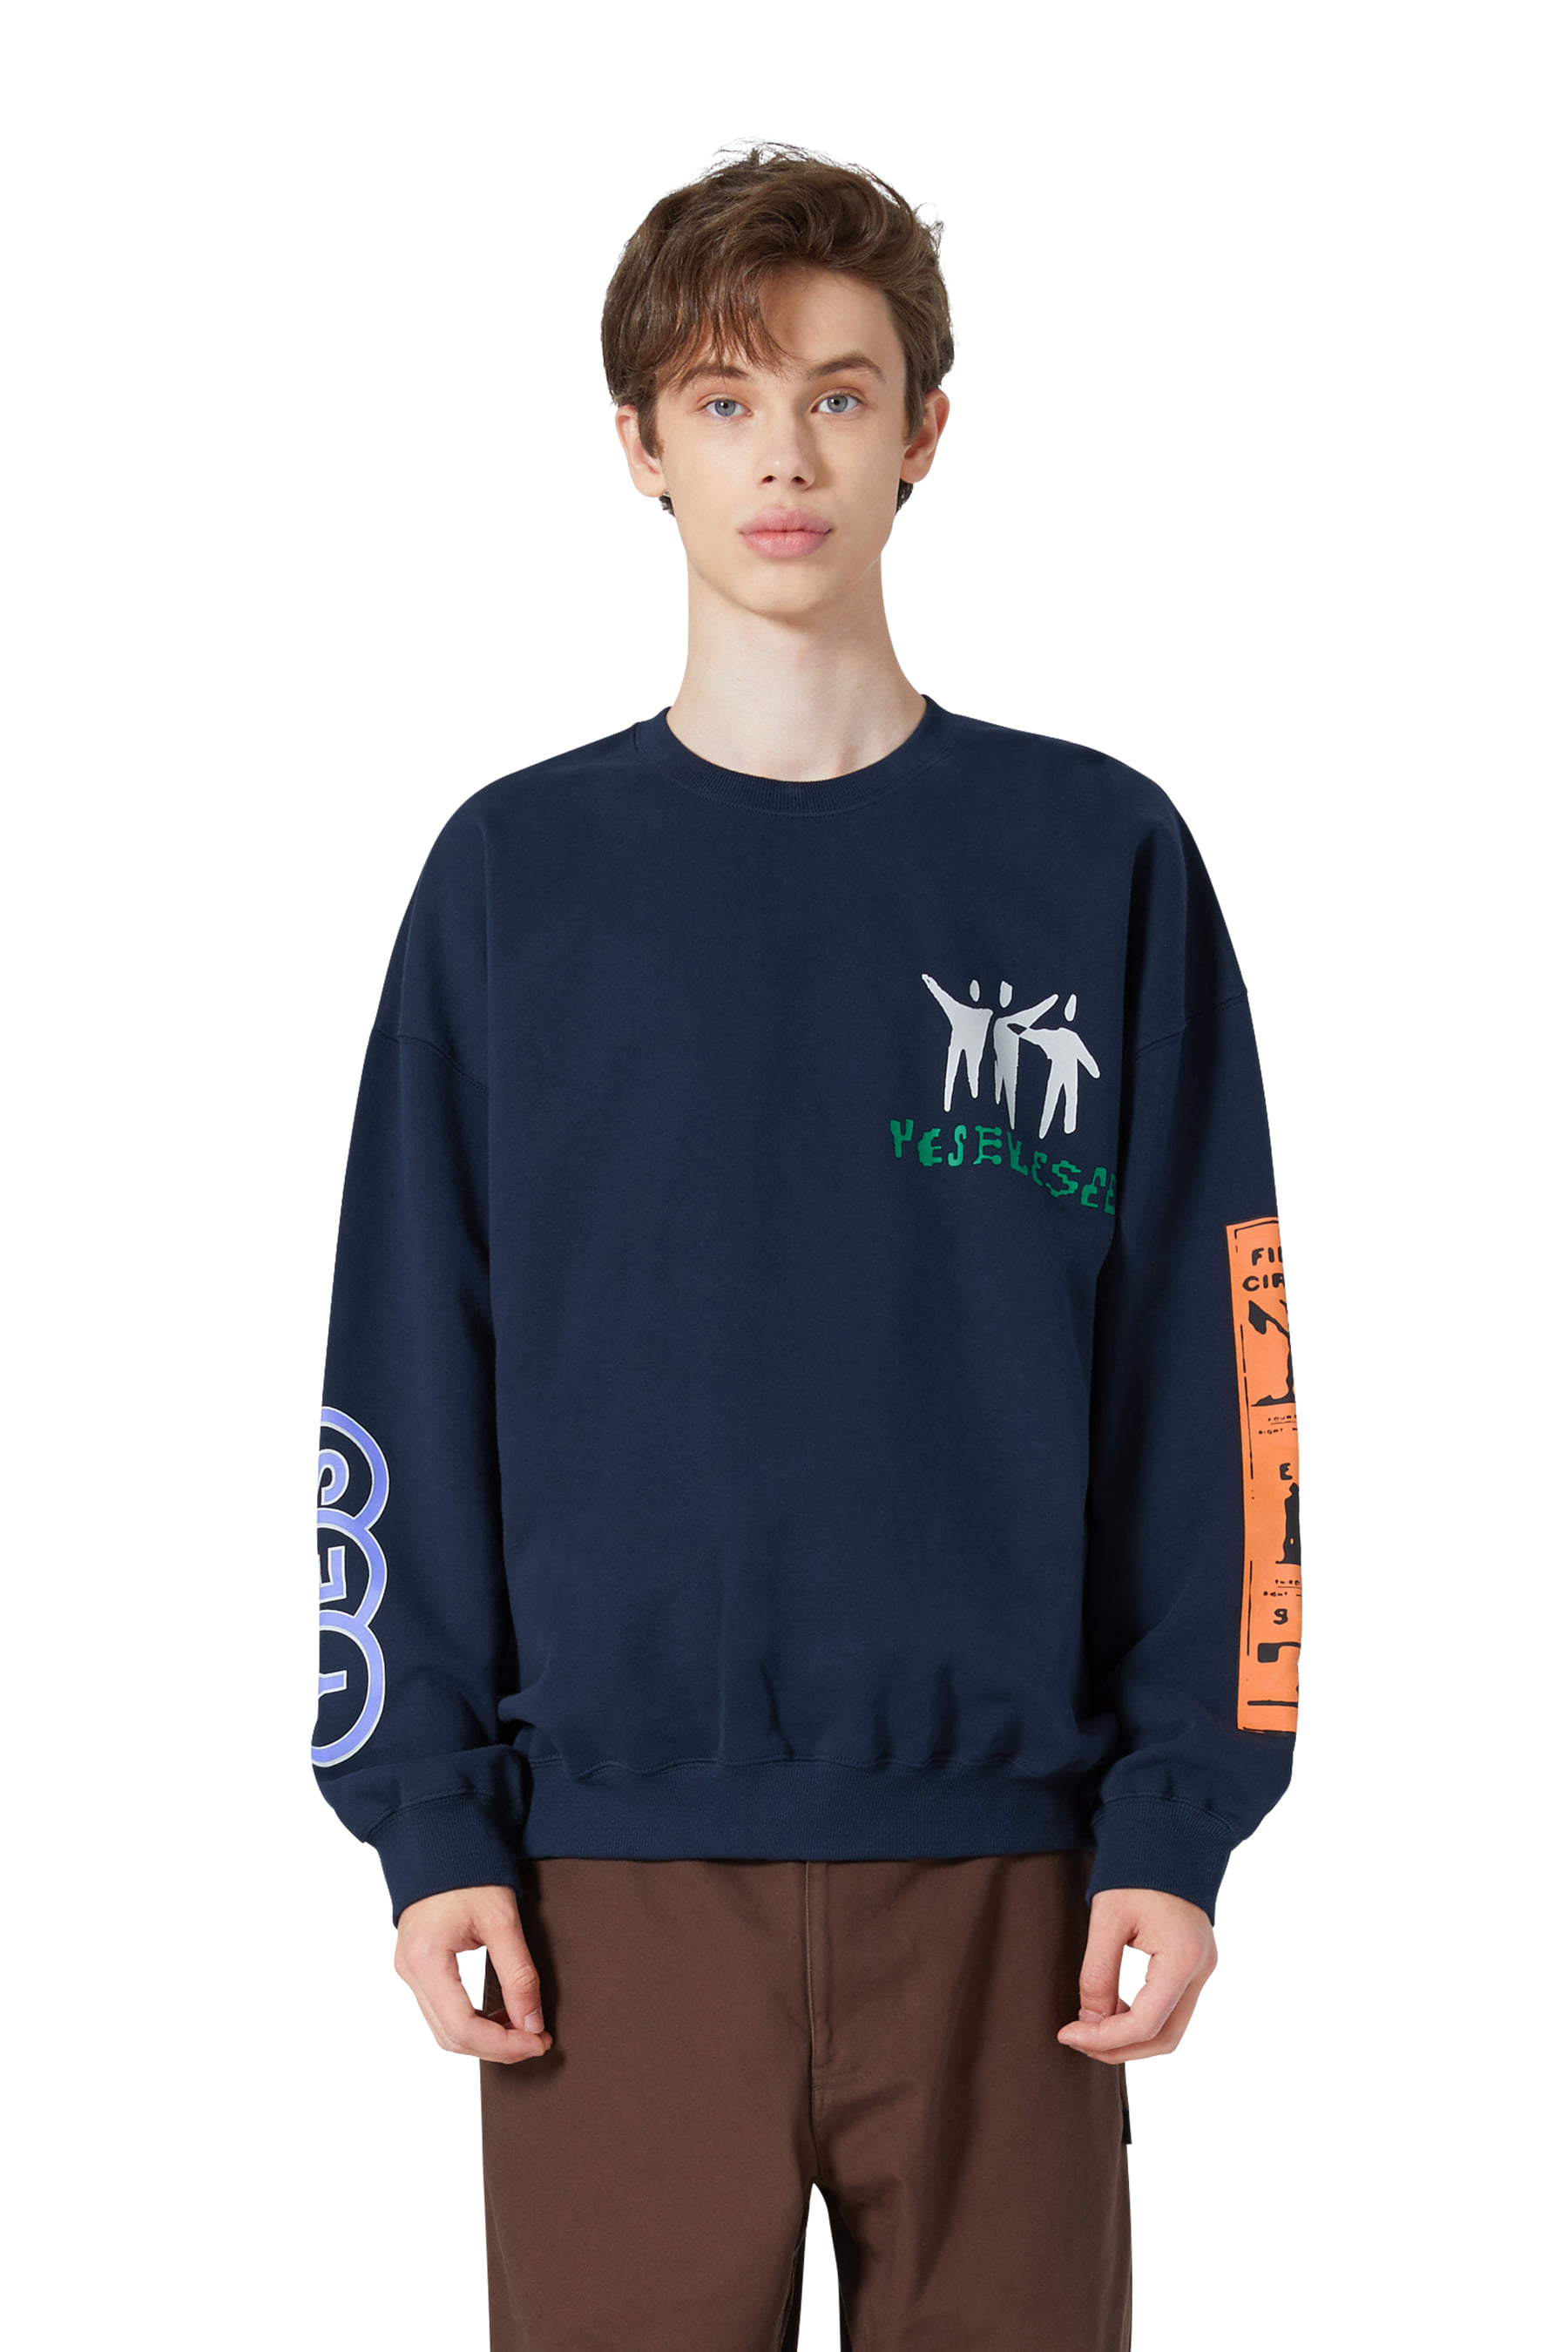 Jockey Sweatshirts Navy